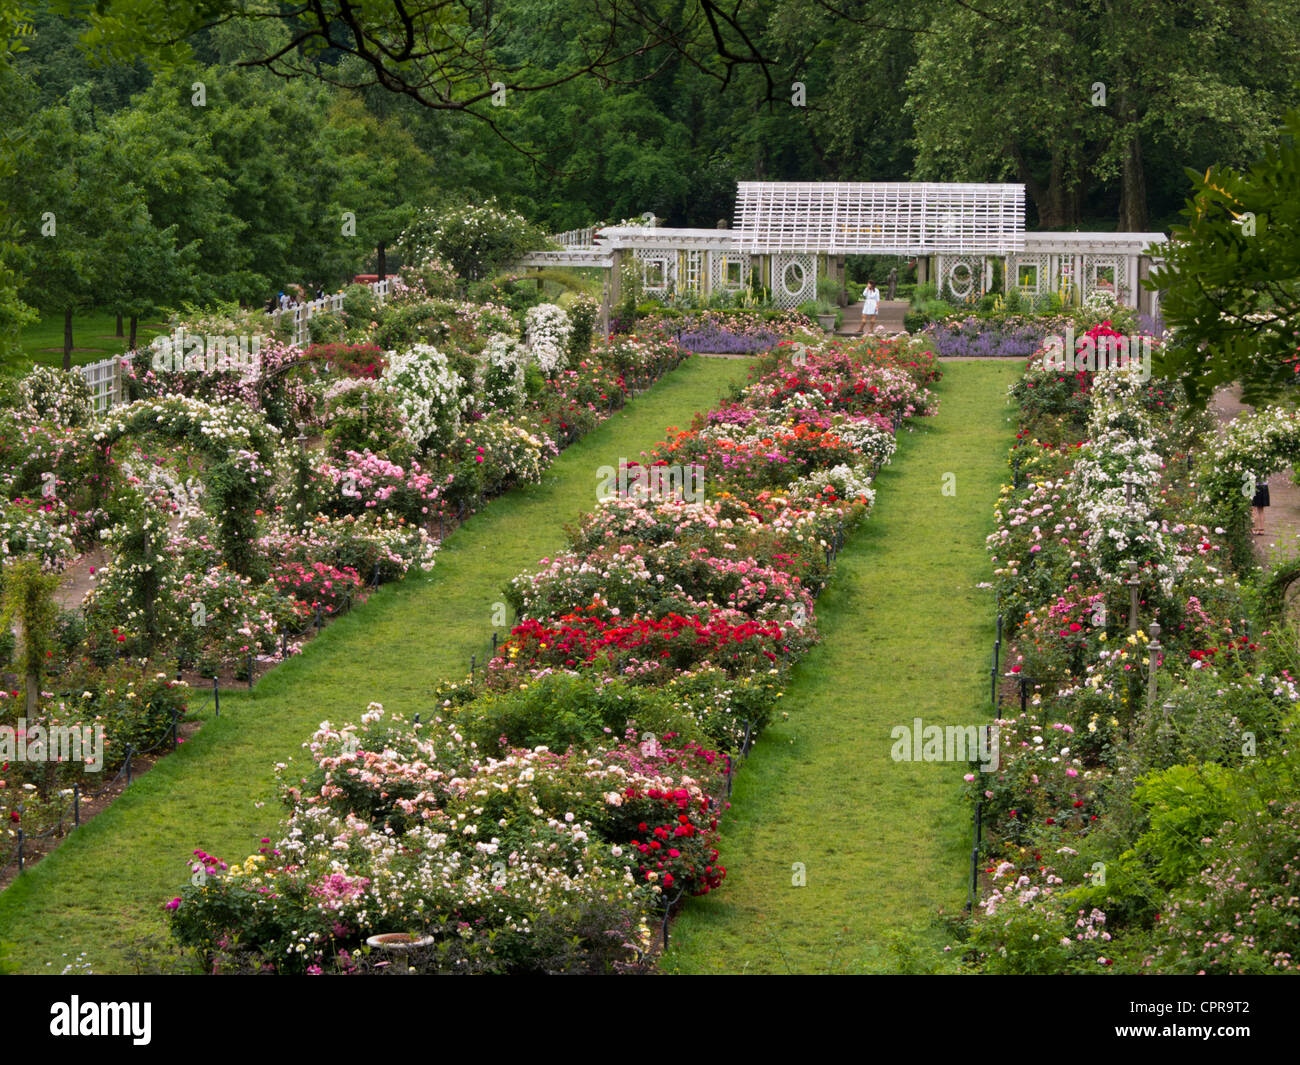 Fantastique Cranford Rose garden Brooklyn Botanic Garden Stock Photo - Alamy ZB-28